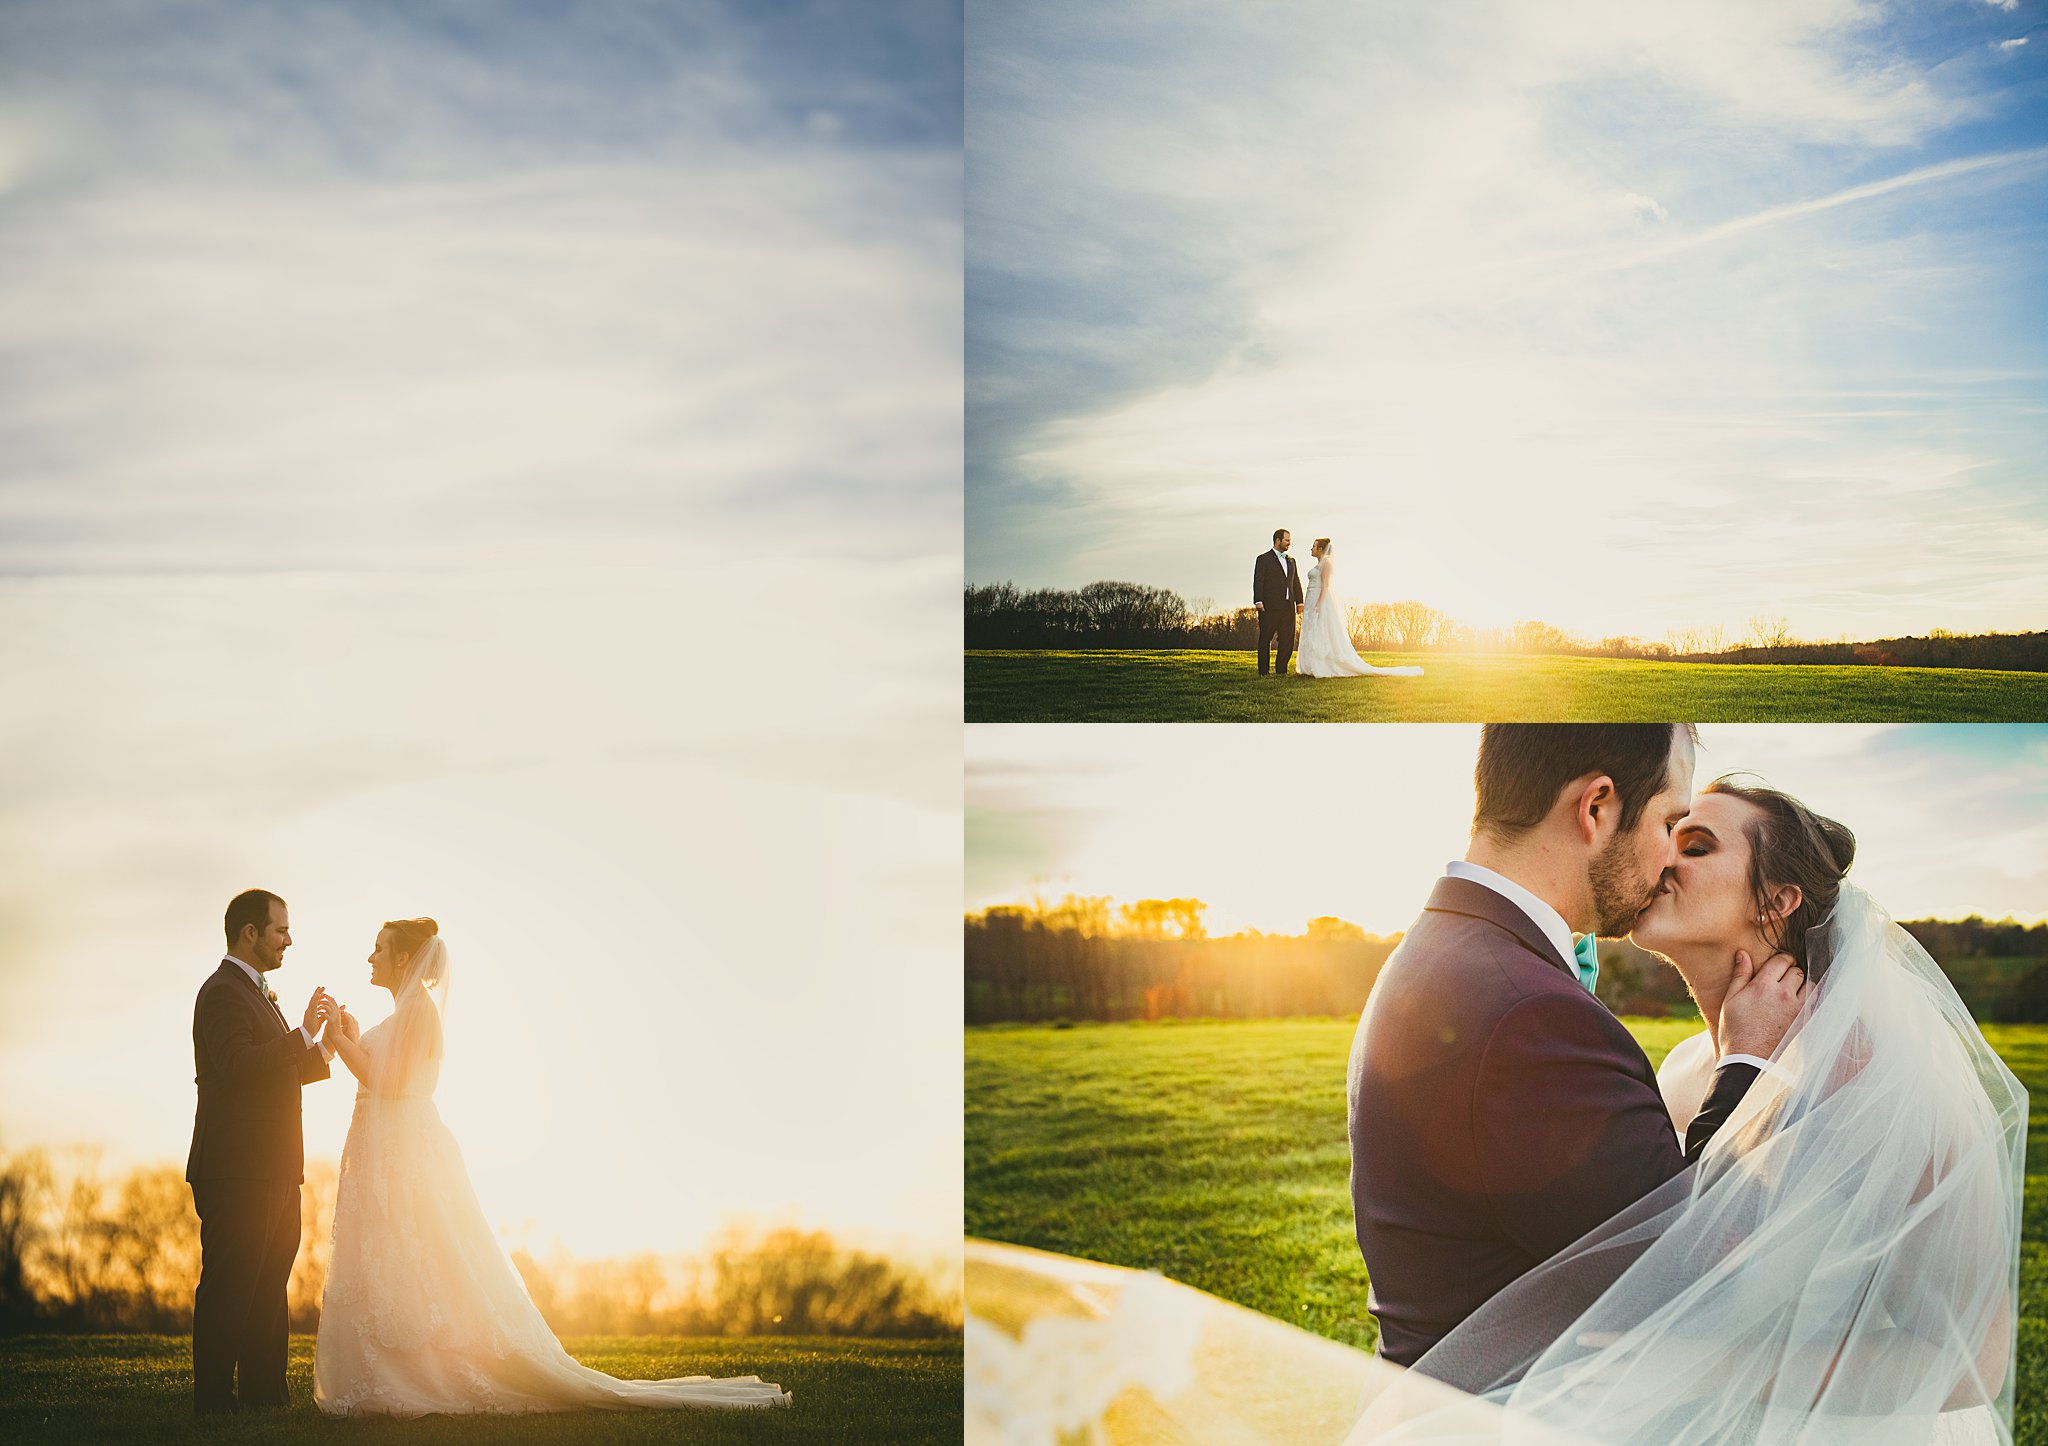 Atlanta Wedding Photographers West Milford Farms Sunset Wedding